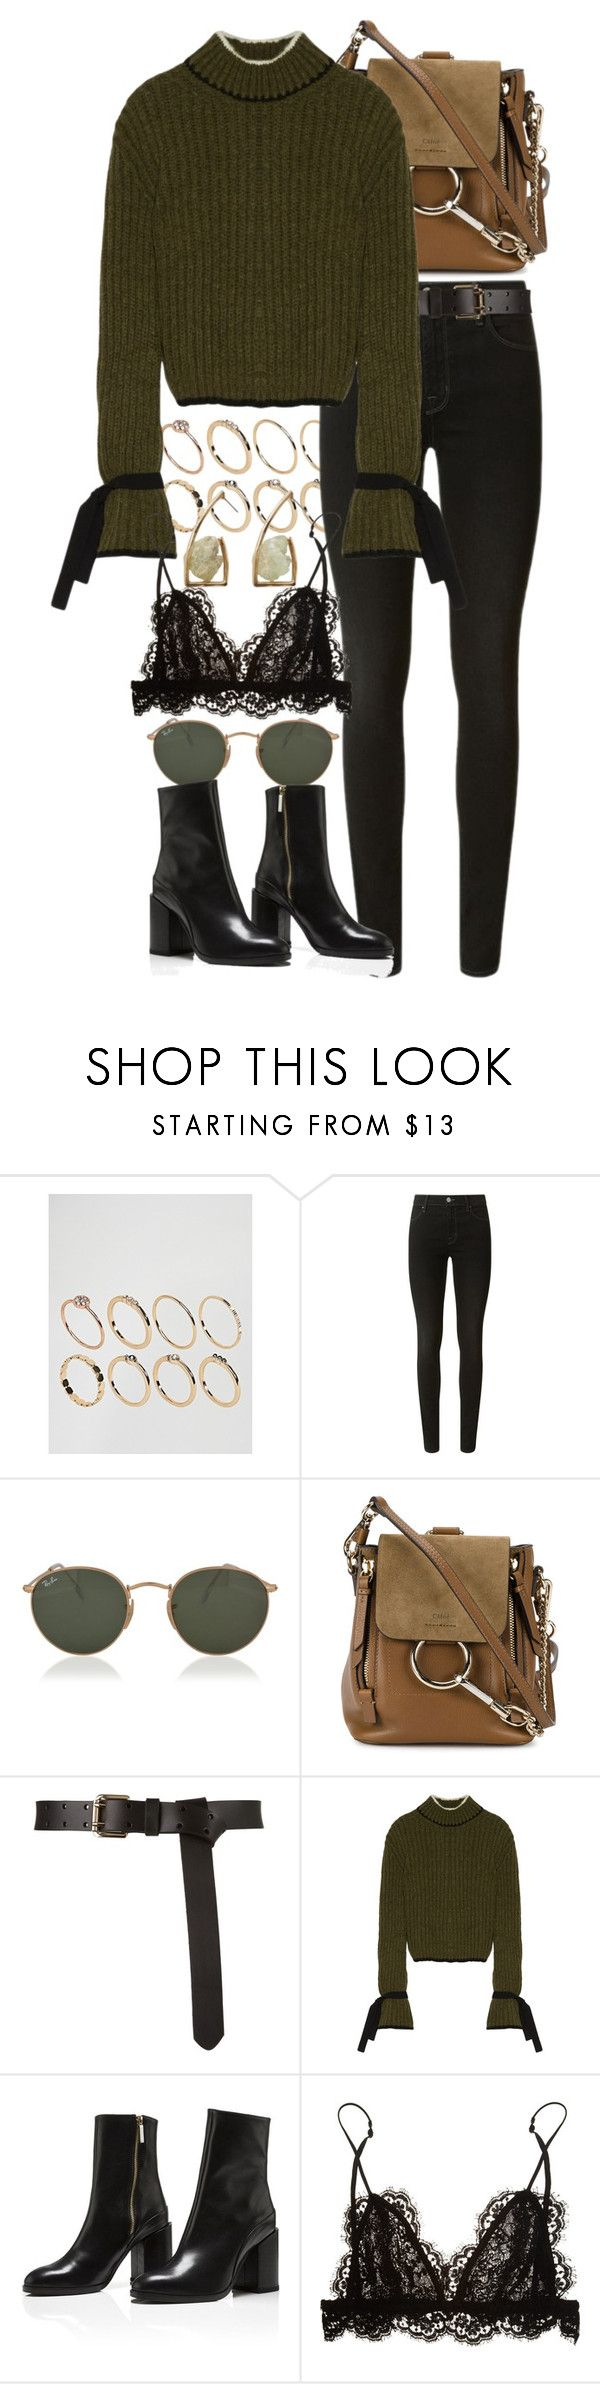 """""""Untitled #10984"""" by nikka-phillips ❤ liked on Polyvore featuring ASOS, J Brand, Ray-Ban, Chloé, J.W. Anderson, Isabel Marant and MANGO"""